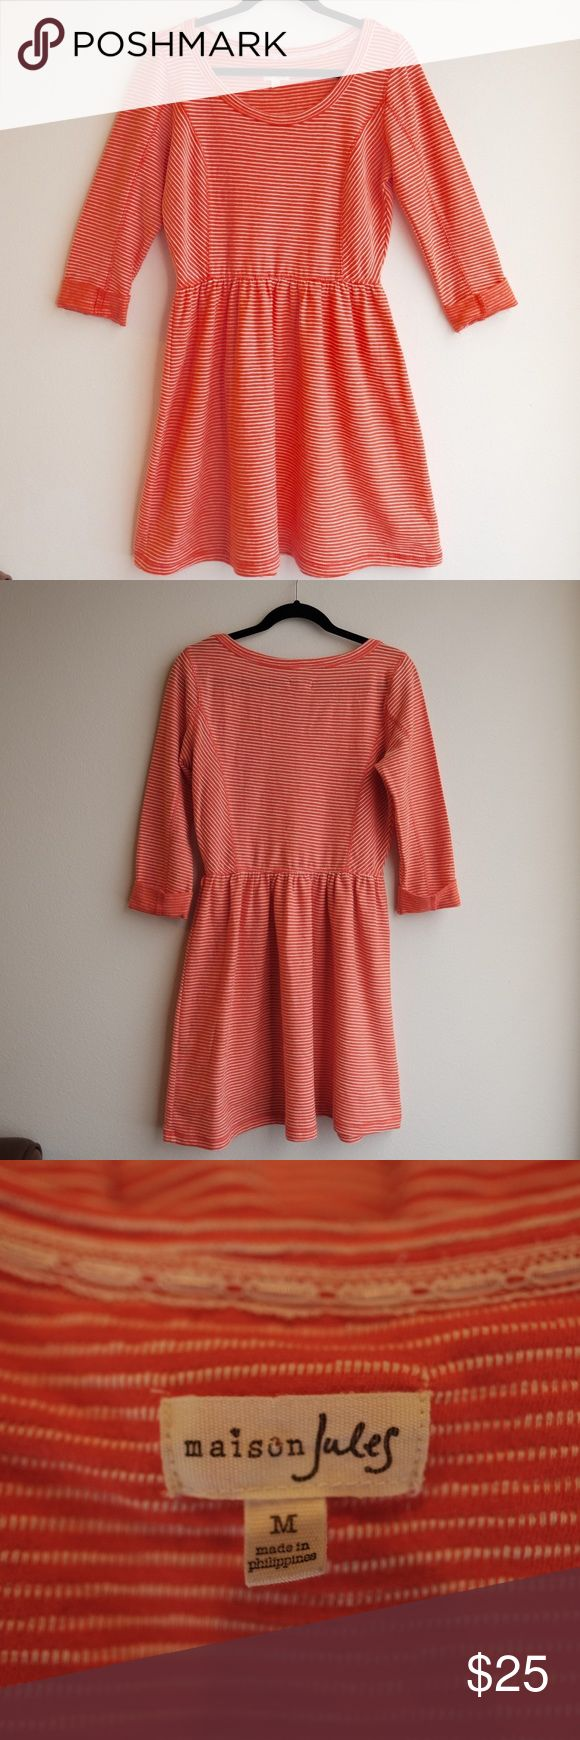 "Maison Jules Orange & White Skater Dress Maison Jules Orange and White 3/4"" Sleeve Skater Dress Size Medium  100% cotton Length: 33.5"" Bust: 18"" Shoulder Width: 15"" Sleeve Length: 13.5"". EUC comes from a pet free and smoke free home. Happy poshing! Maison Jules Dresses"